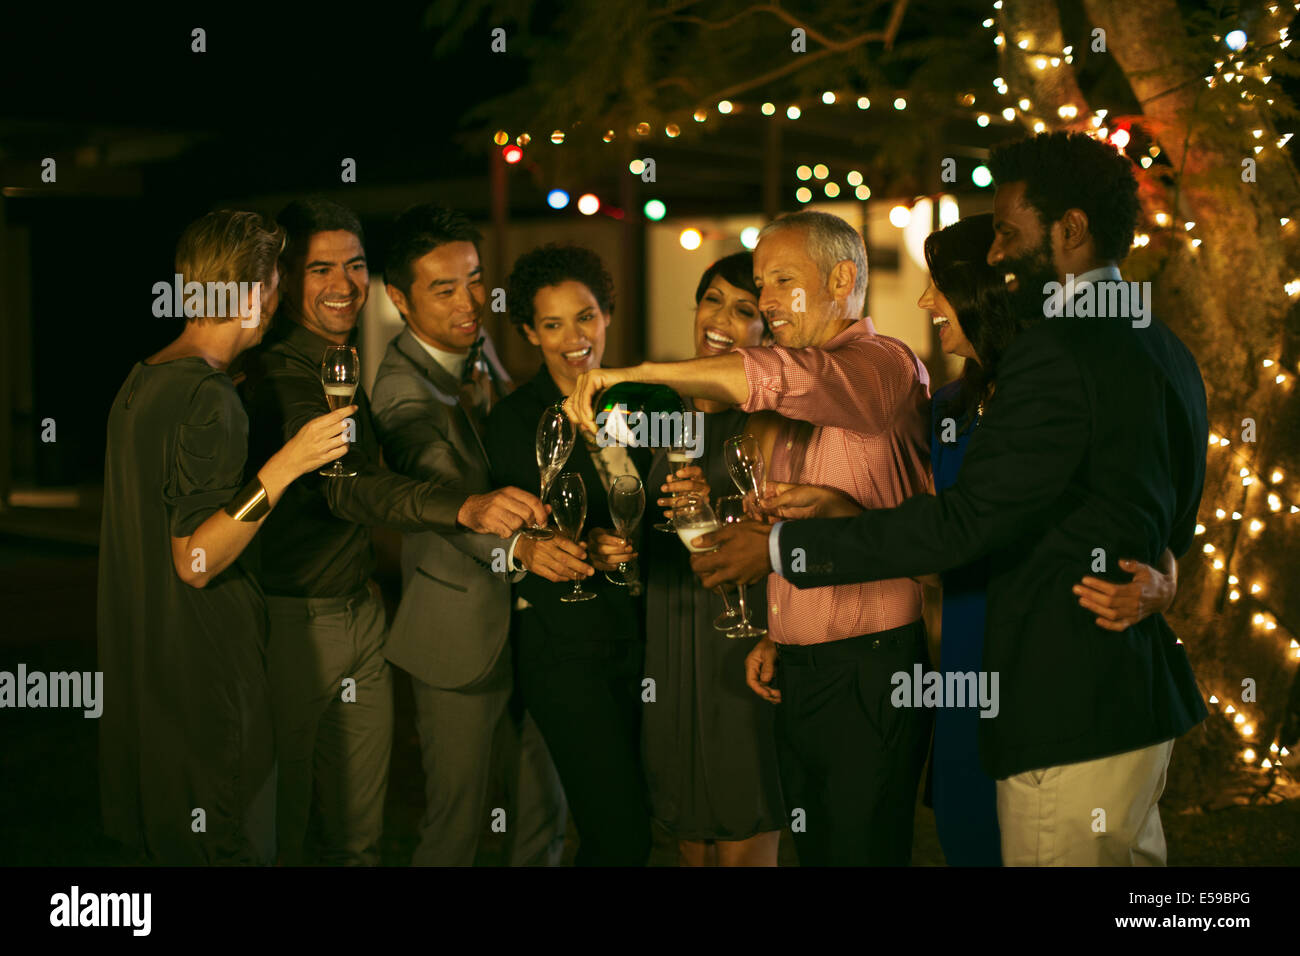 Friends celebrating with champagne at party - Stock Image